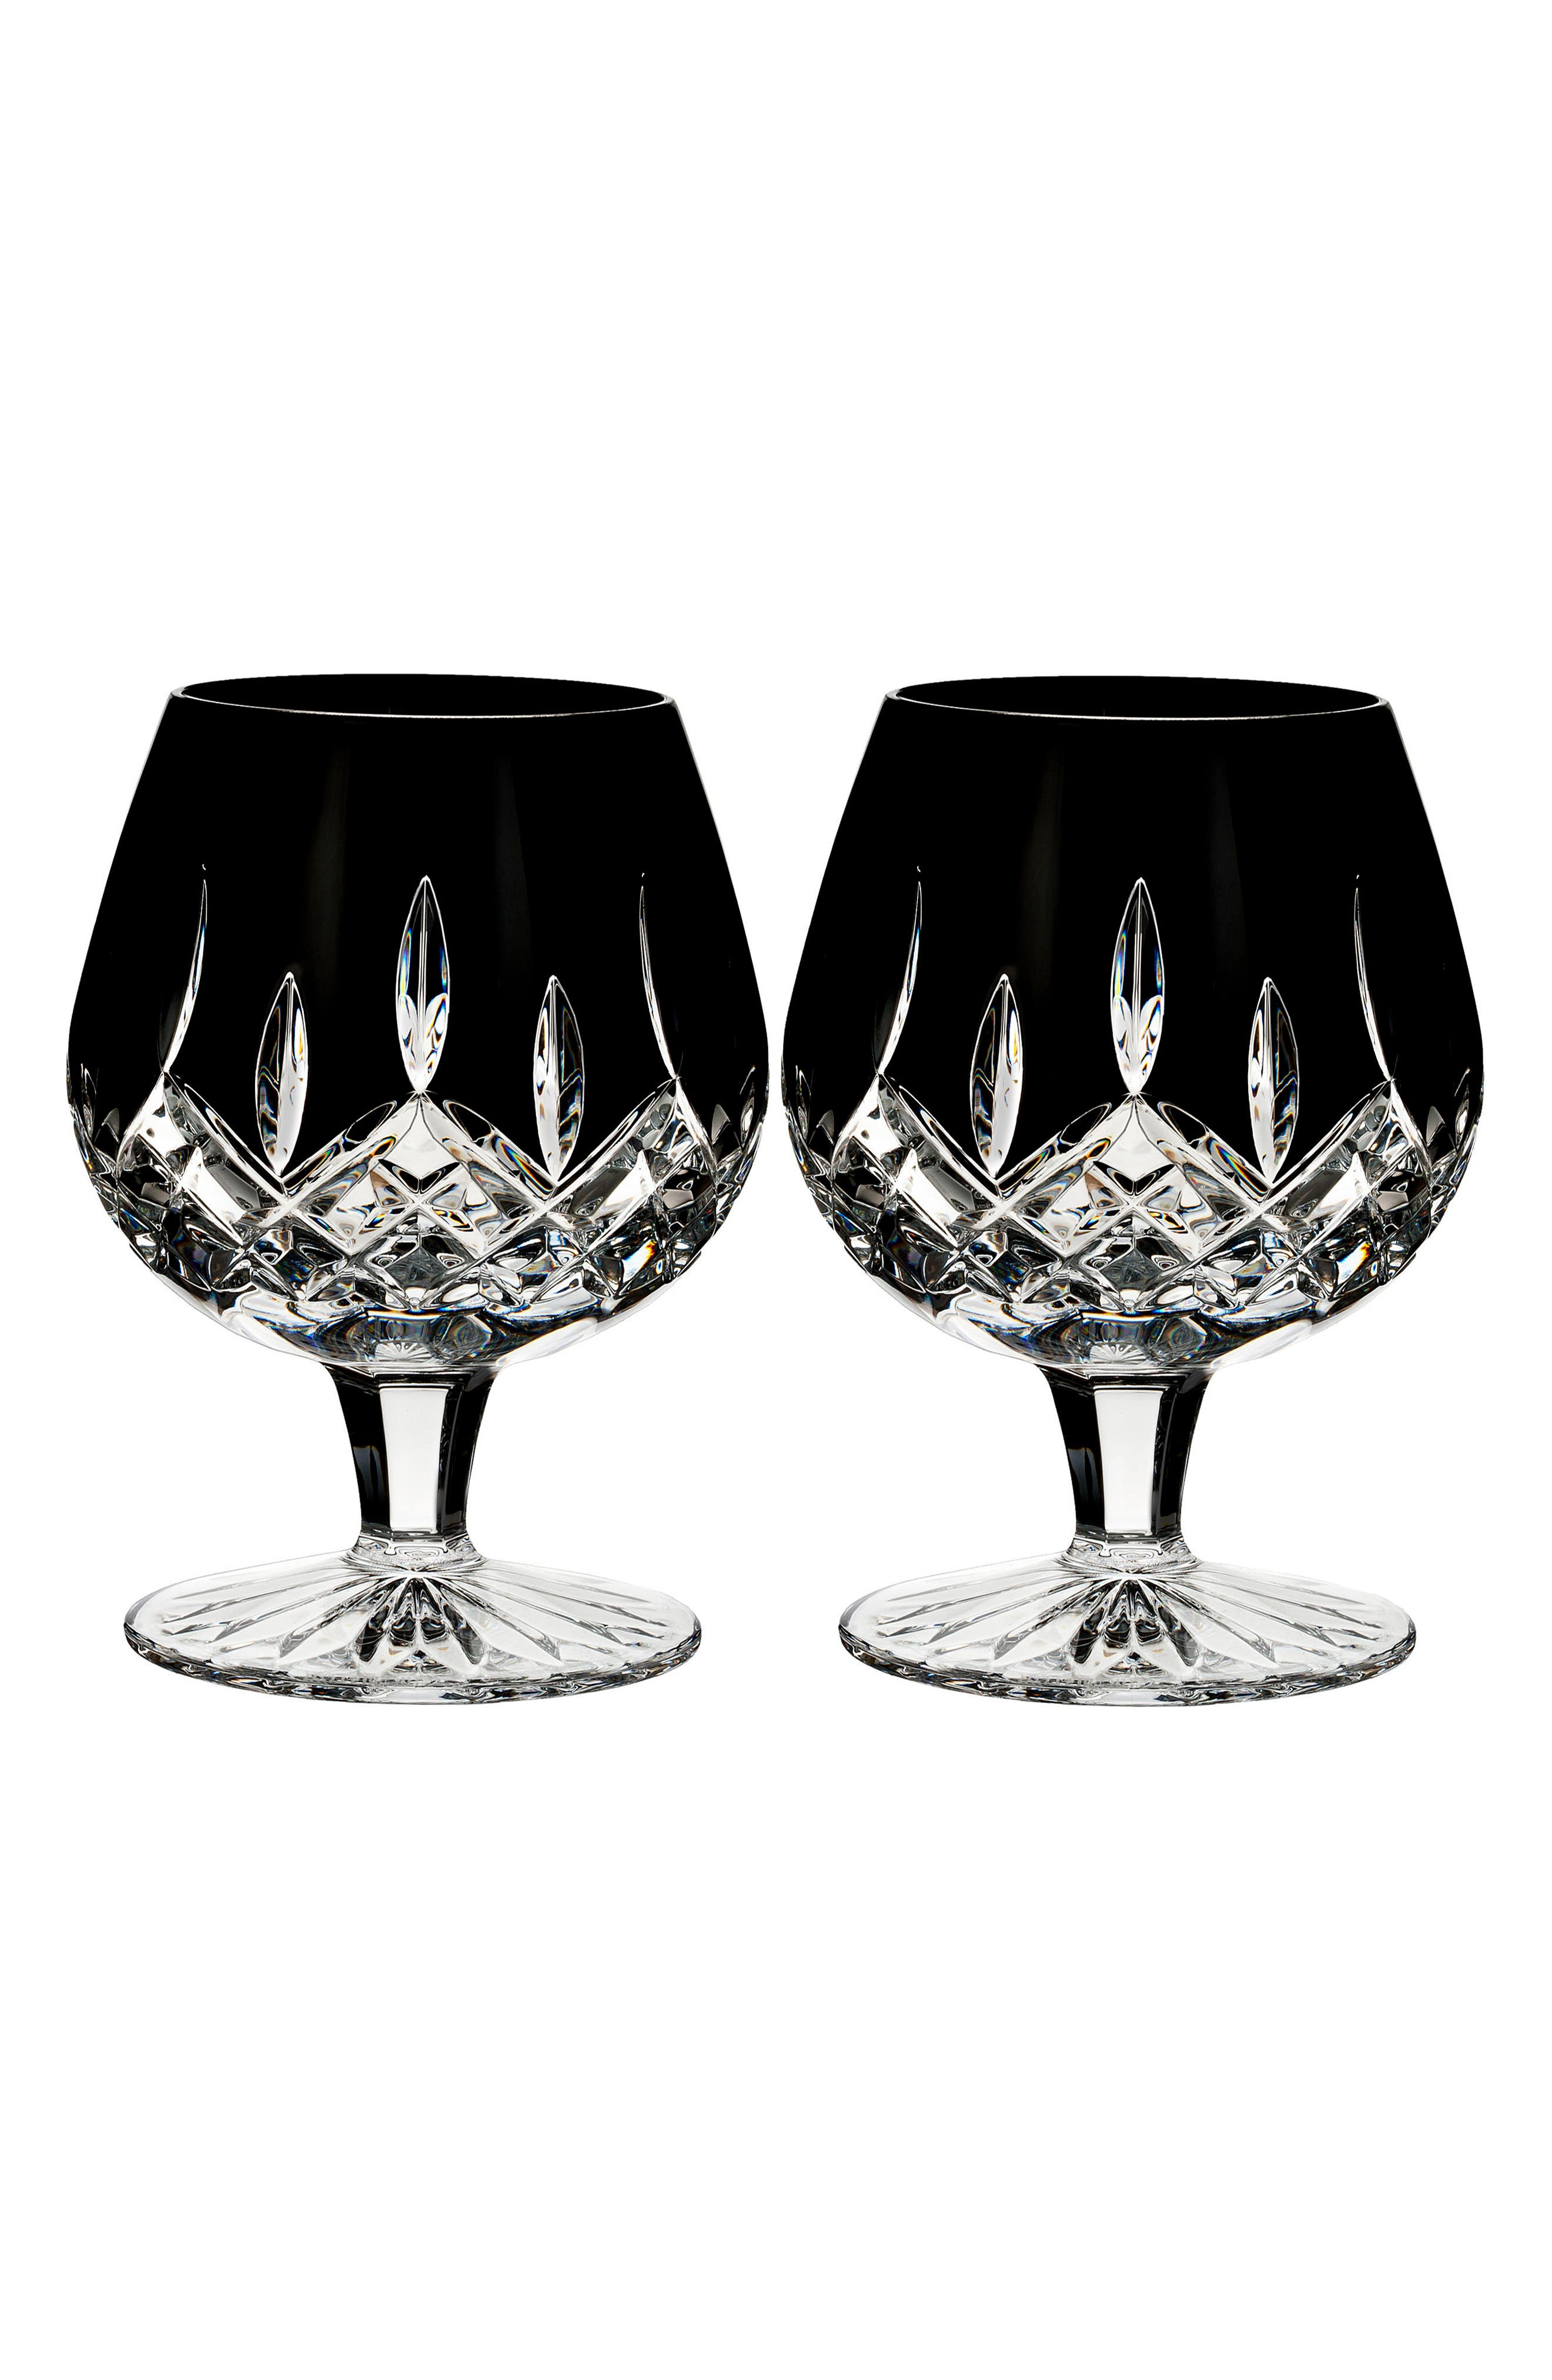 Main Image - Waterford Lismore Diamond Set of 2 Black Lead Crystal Brandy Glasses